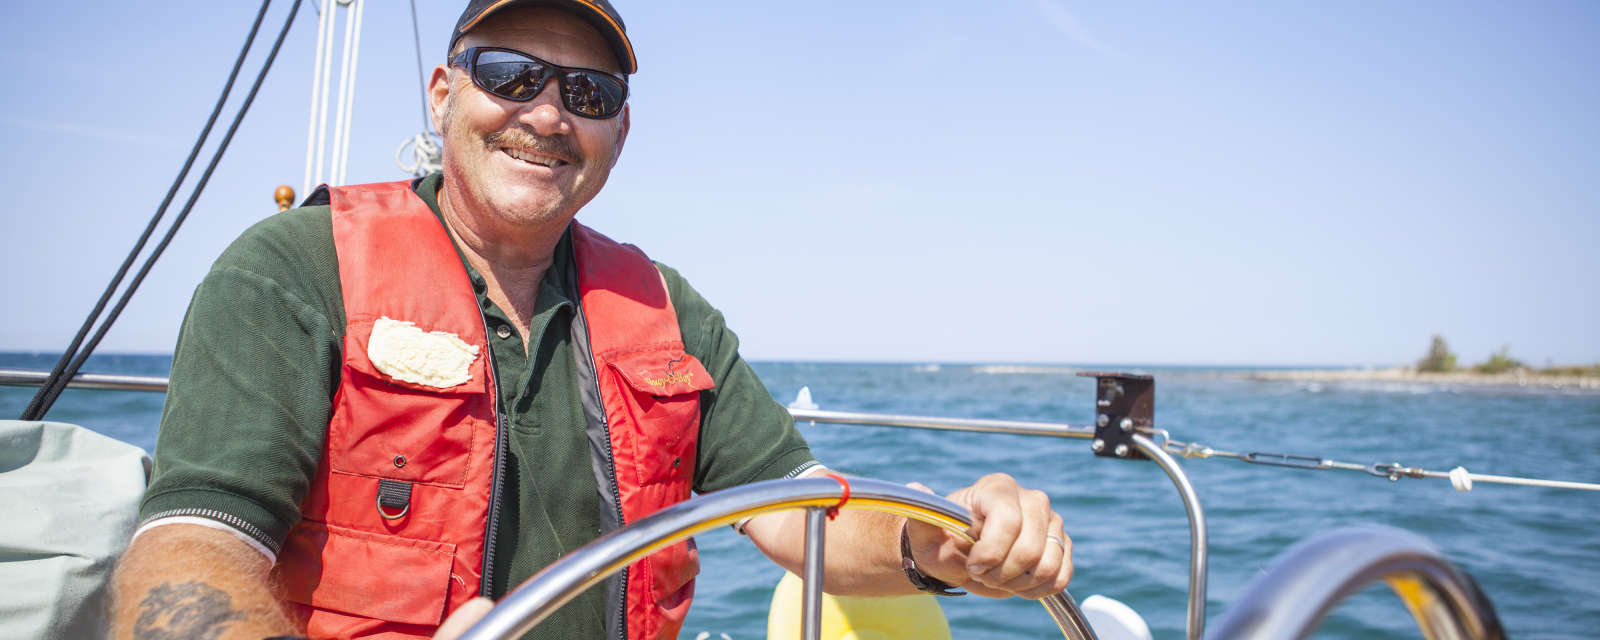 Boating and Watersports in Saugeen Shores